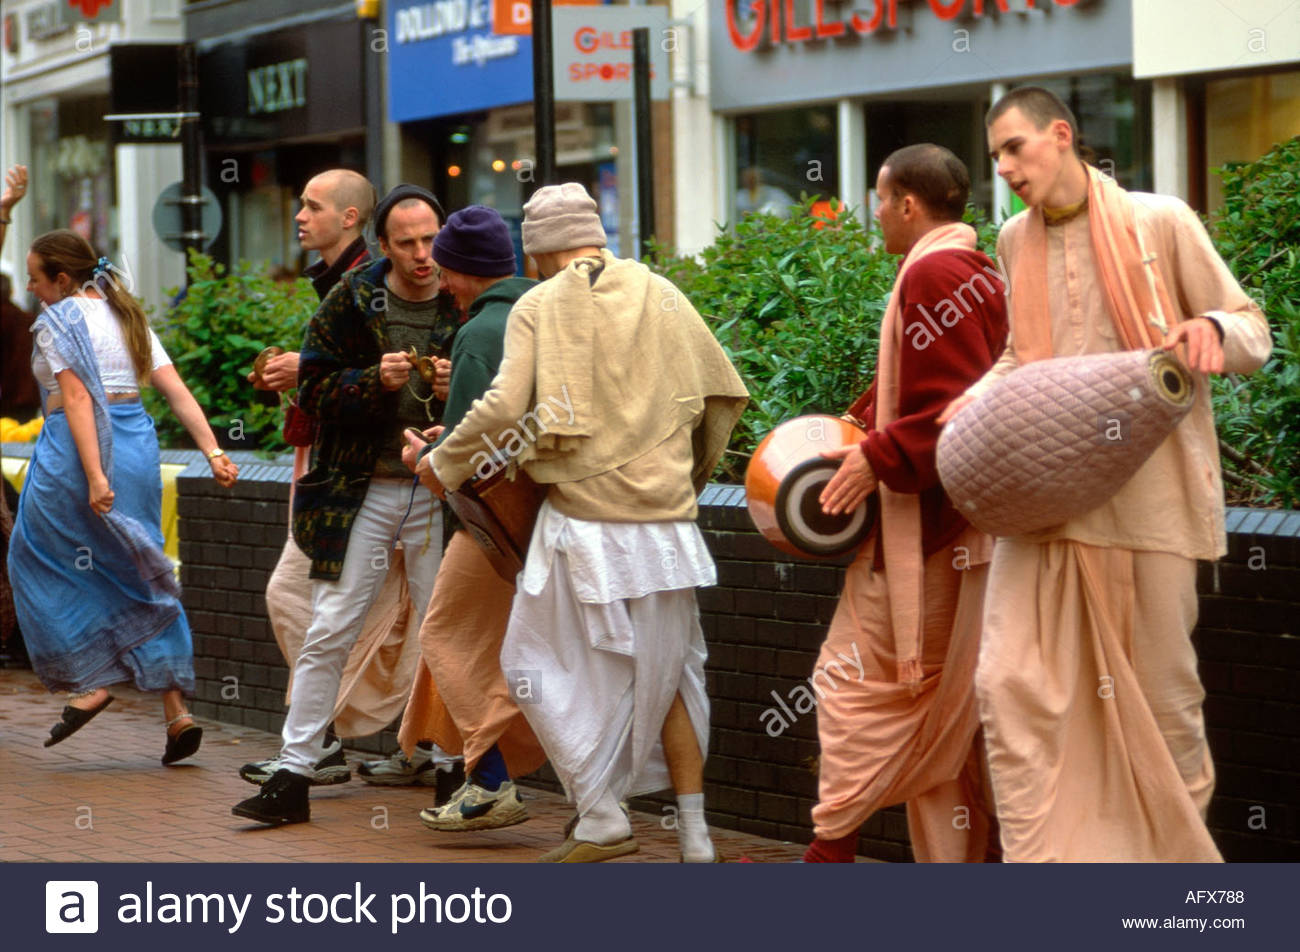 Hari Krishna Walsall West Midlands UK - Stock Image